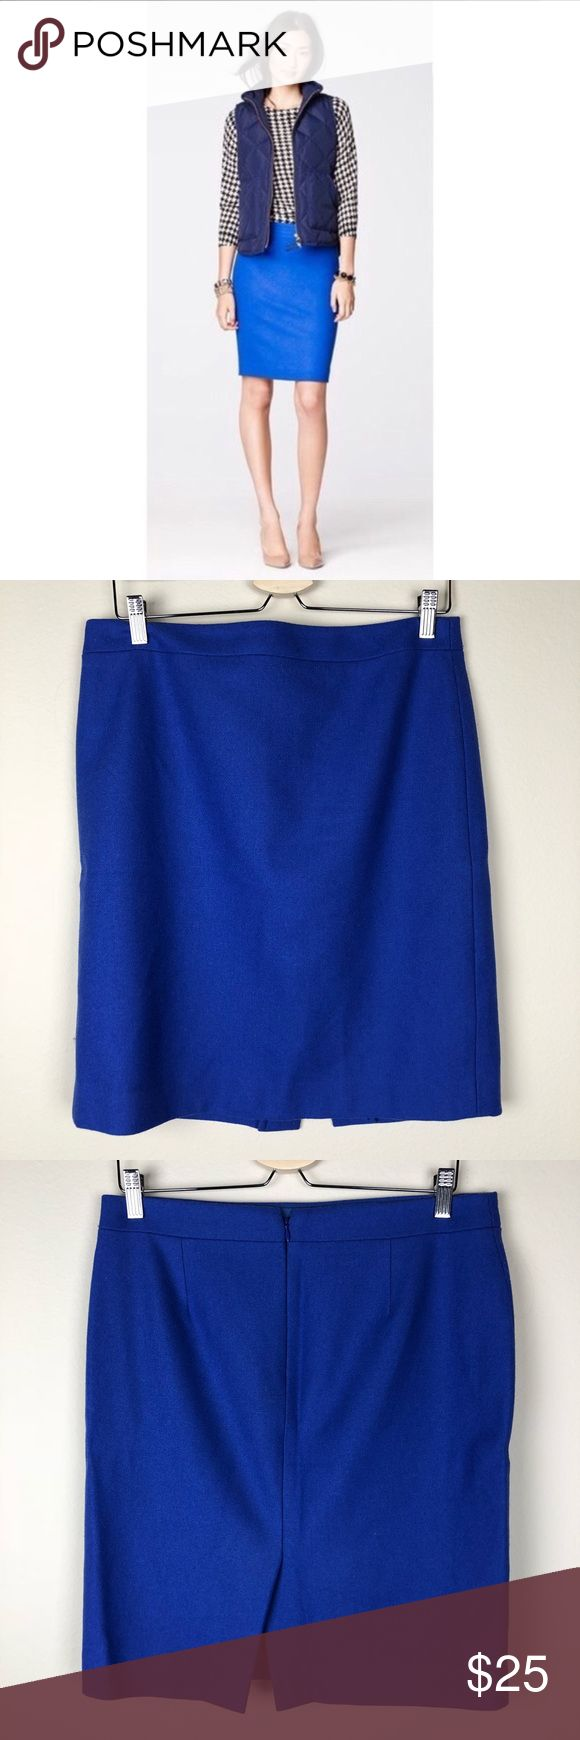 """J. Crew   Blue Wool Pencil Skirt 10 The perfect Pencil Skirt from J. Crew factory in a in bright blue!  Material: Wool/viscose  Size: 10  Condition: New without tags. I took off the tags when I bought it but this has been sitting unworn in my closet for far too long! Excellent condition, no flaws  Measurements: ▪️Waist: 16"""" laid flat, straight across ▪️Length: 21"""" J. Crew Factory Skirts Pencil"""